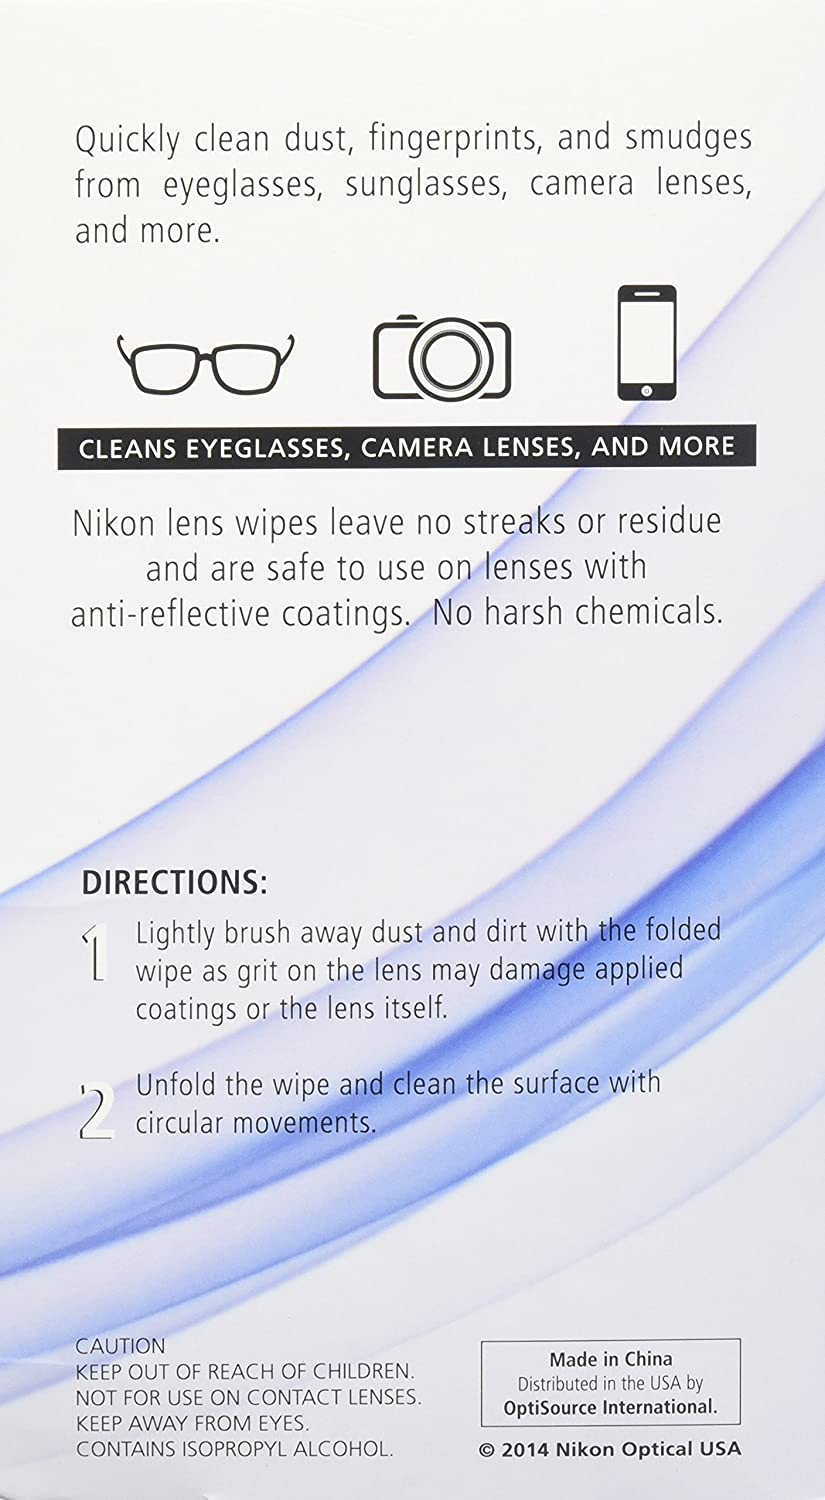 dcc69829b2b Amazon.com  Nikon Pre-Moistened Lens Cleaning Wipes - Cleans Without  Streaks for Eyeglasses and Sunglasses Wipes 200 Ct  Health   Personal Care